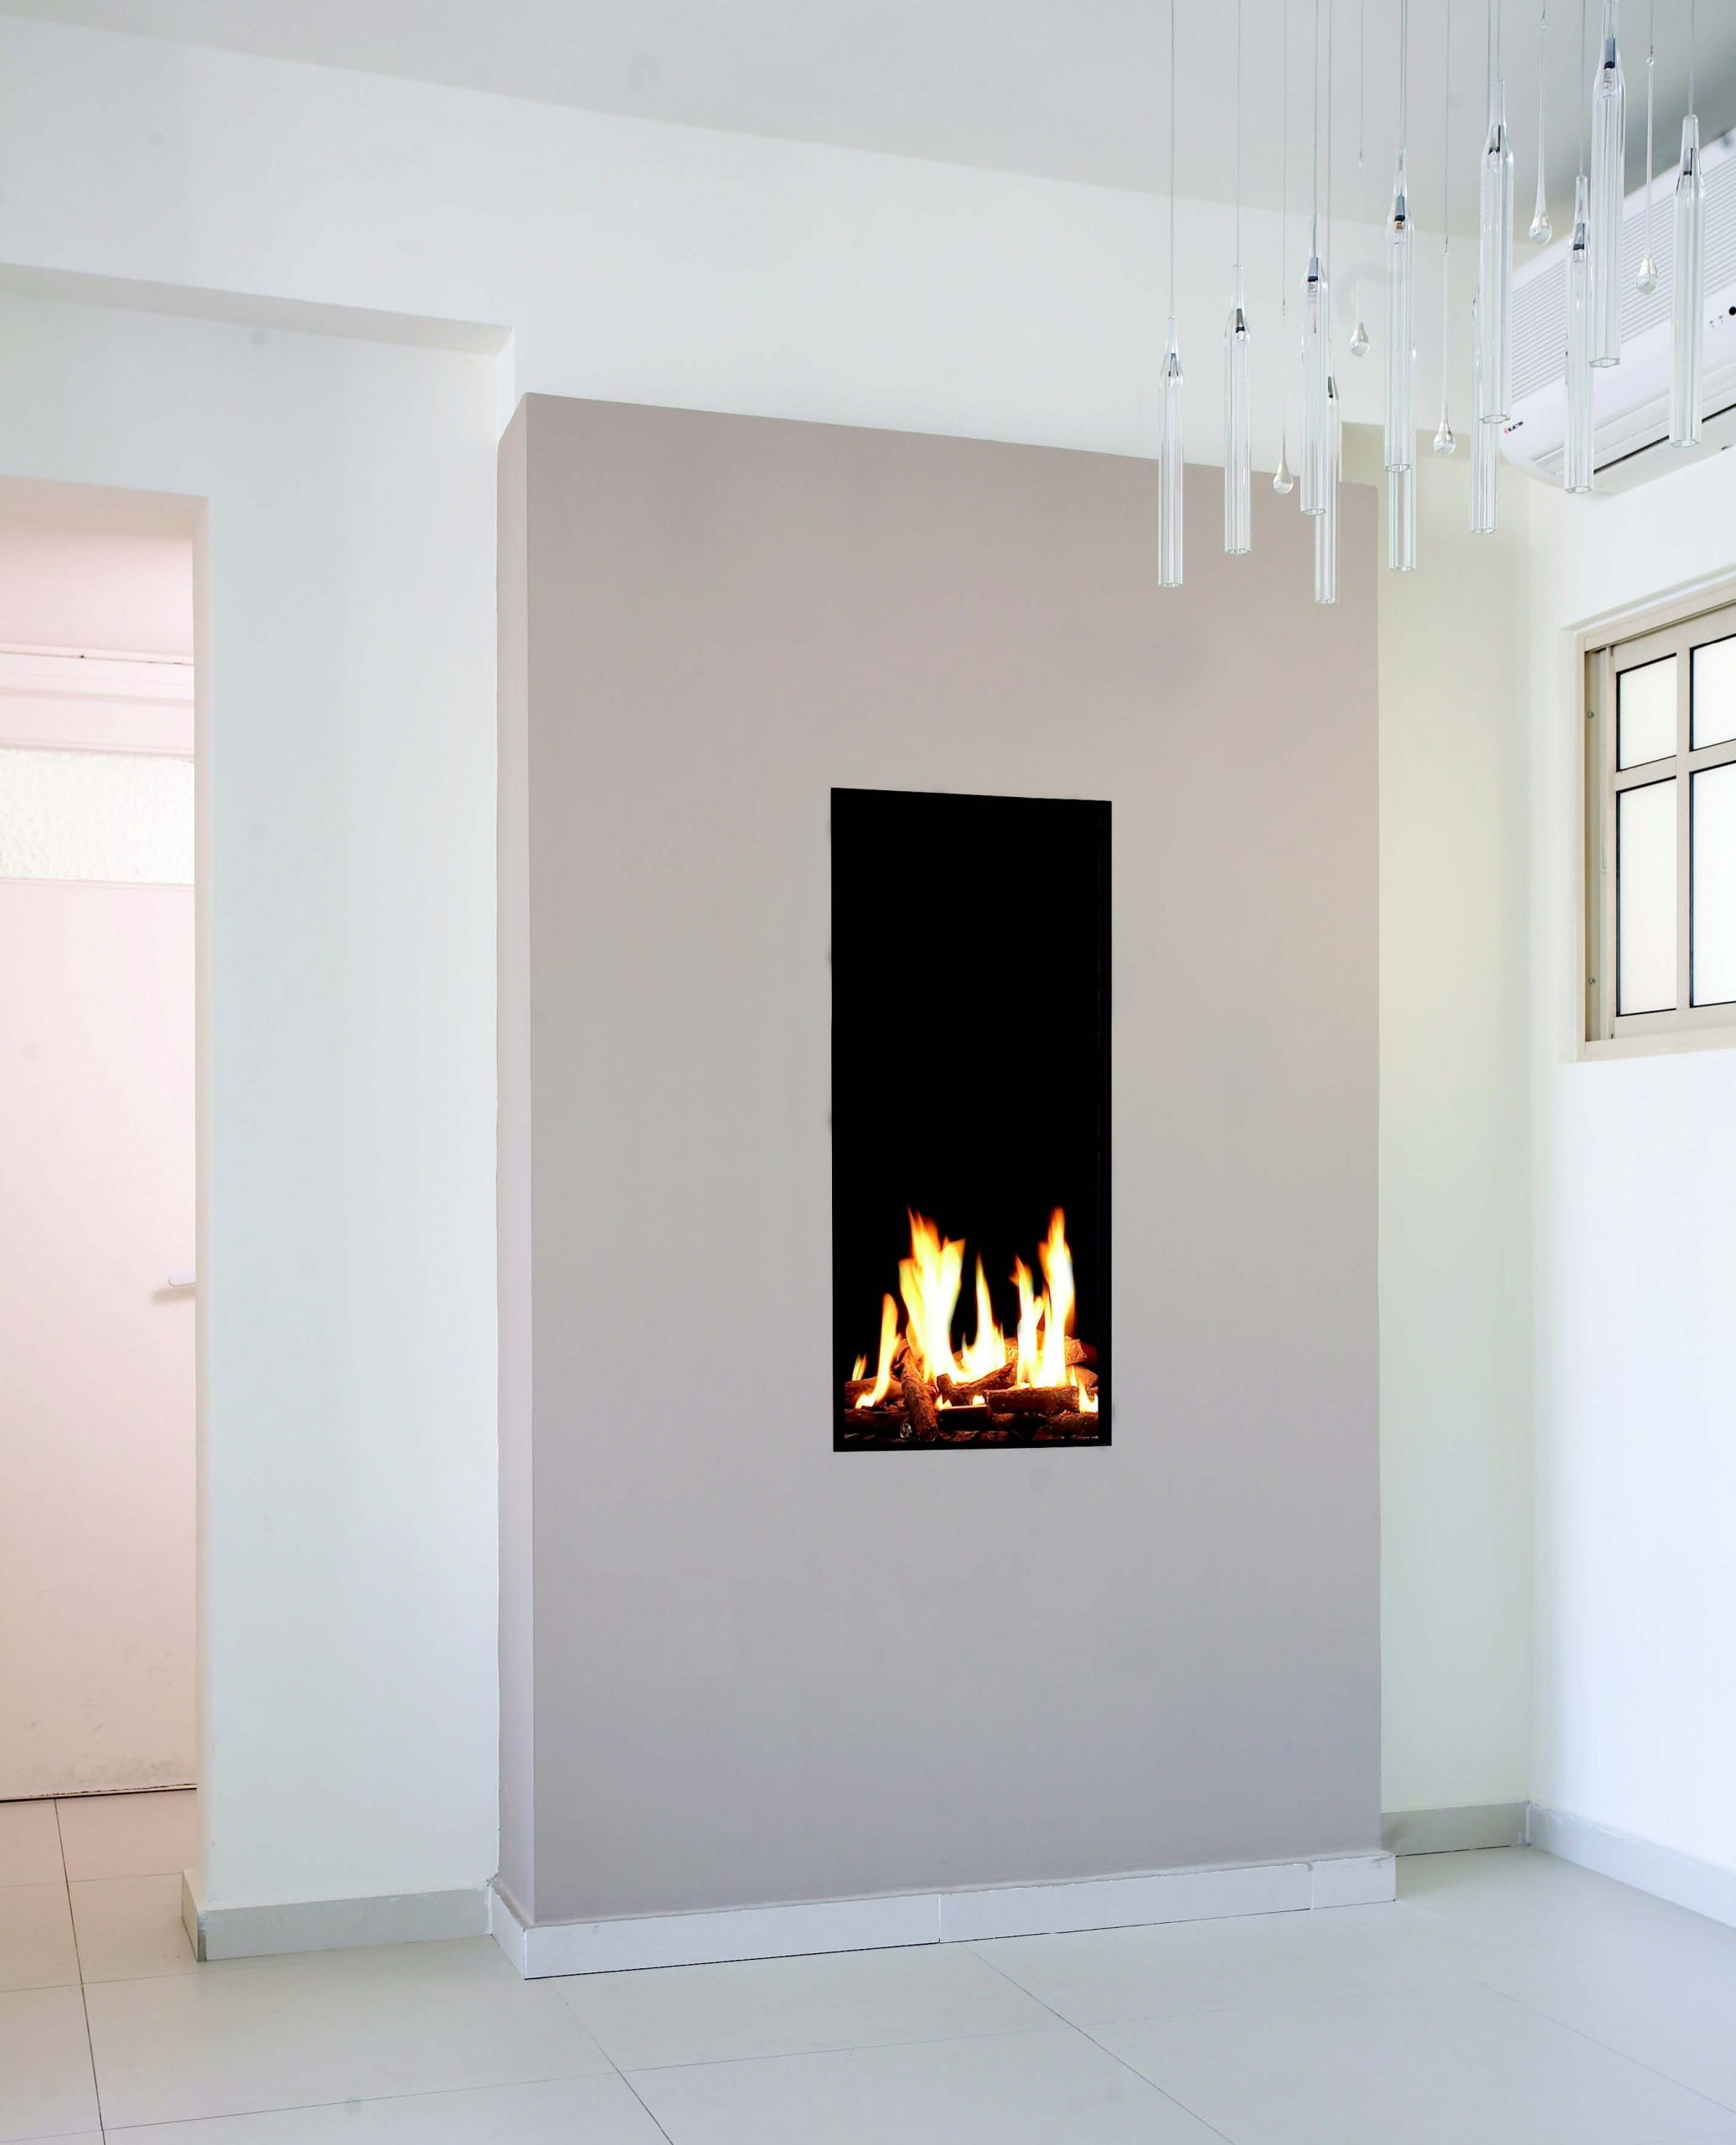 Wall Mounted Natural Gas Fireplace Fresh Tall & Narrow Gas Fireplace Created by ortal with Images